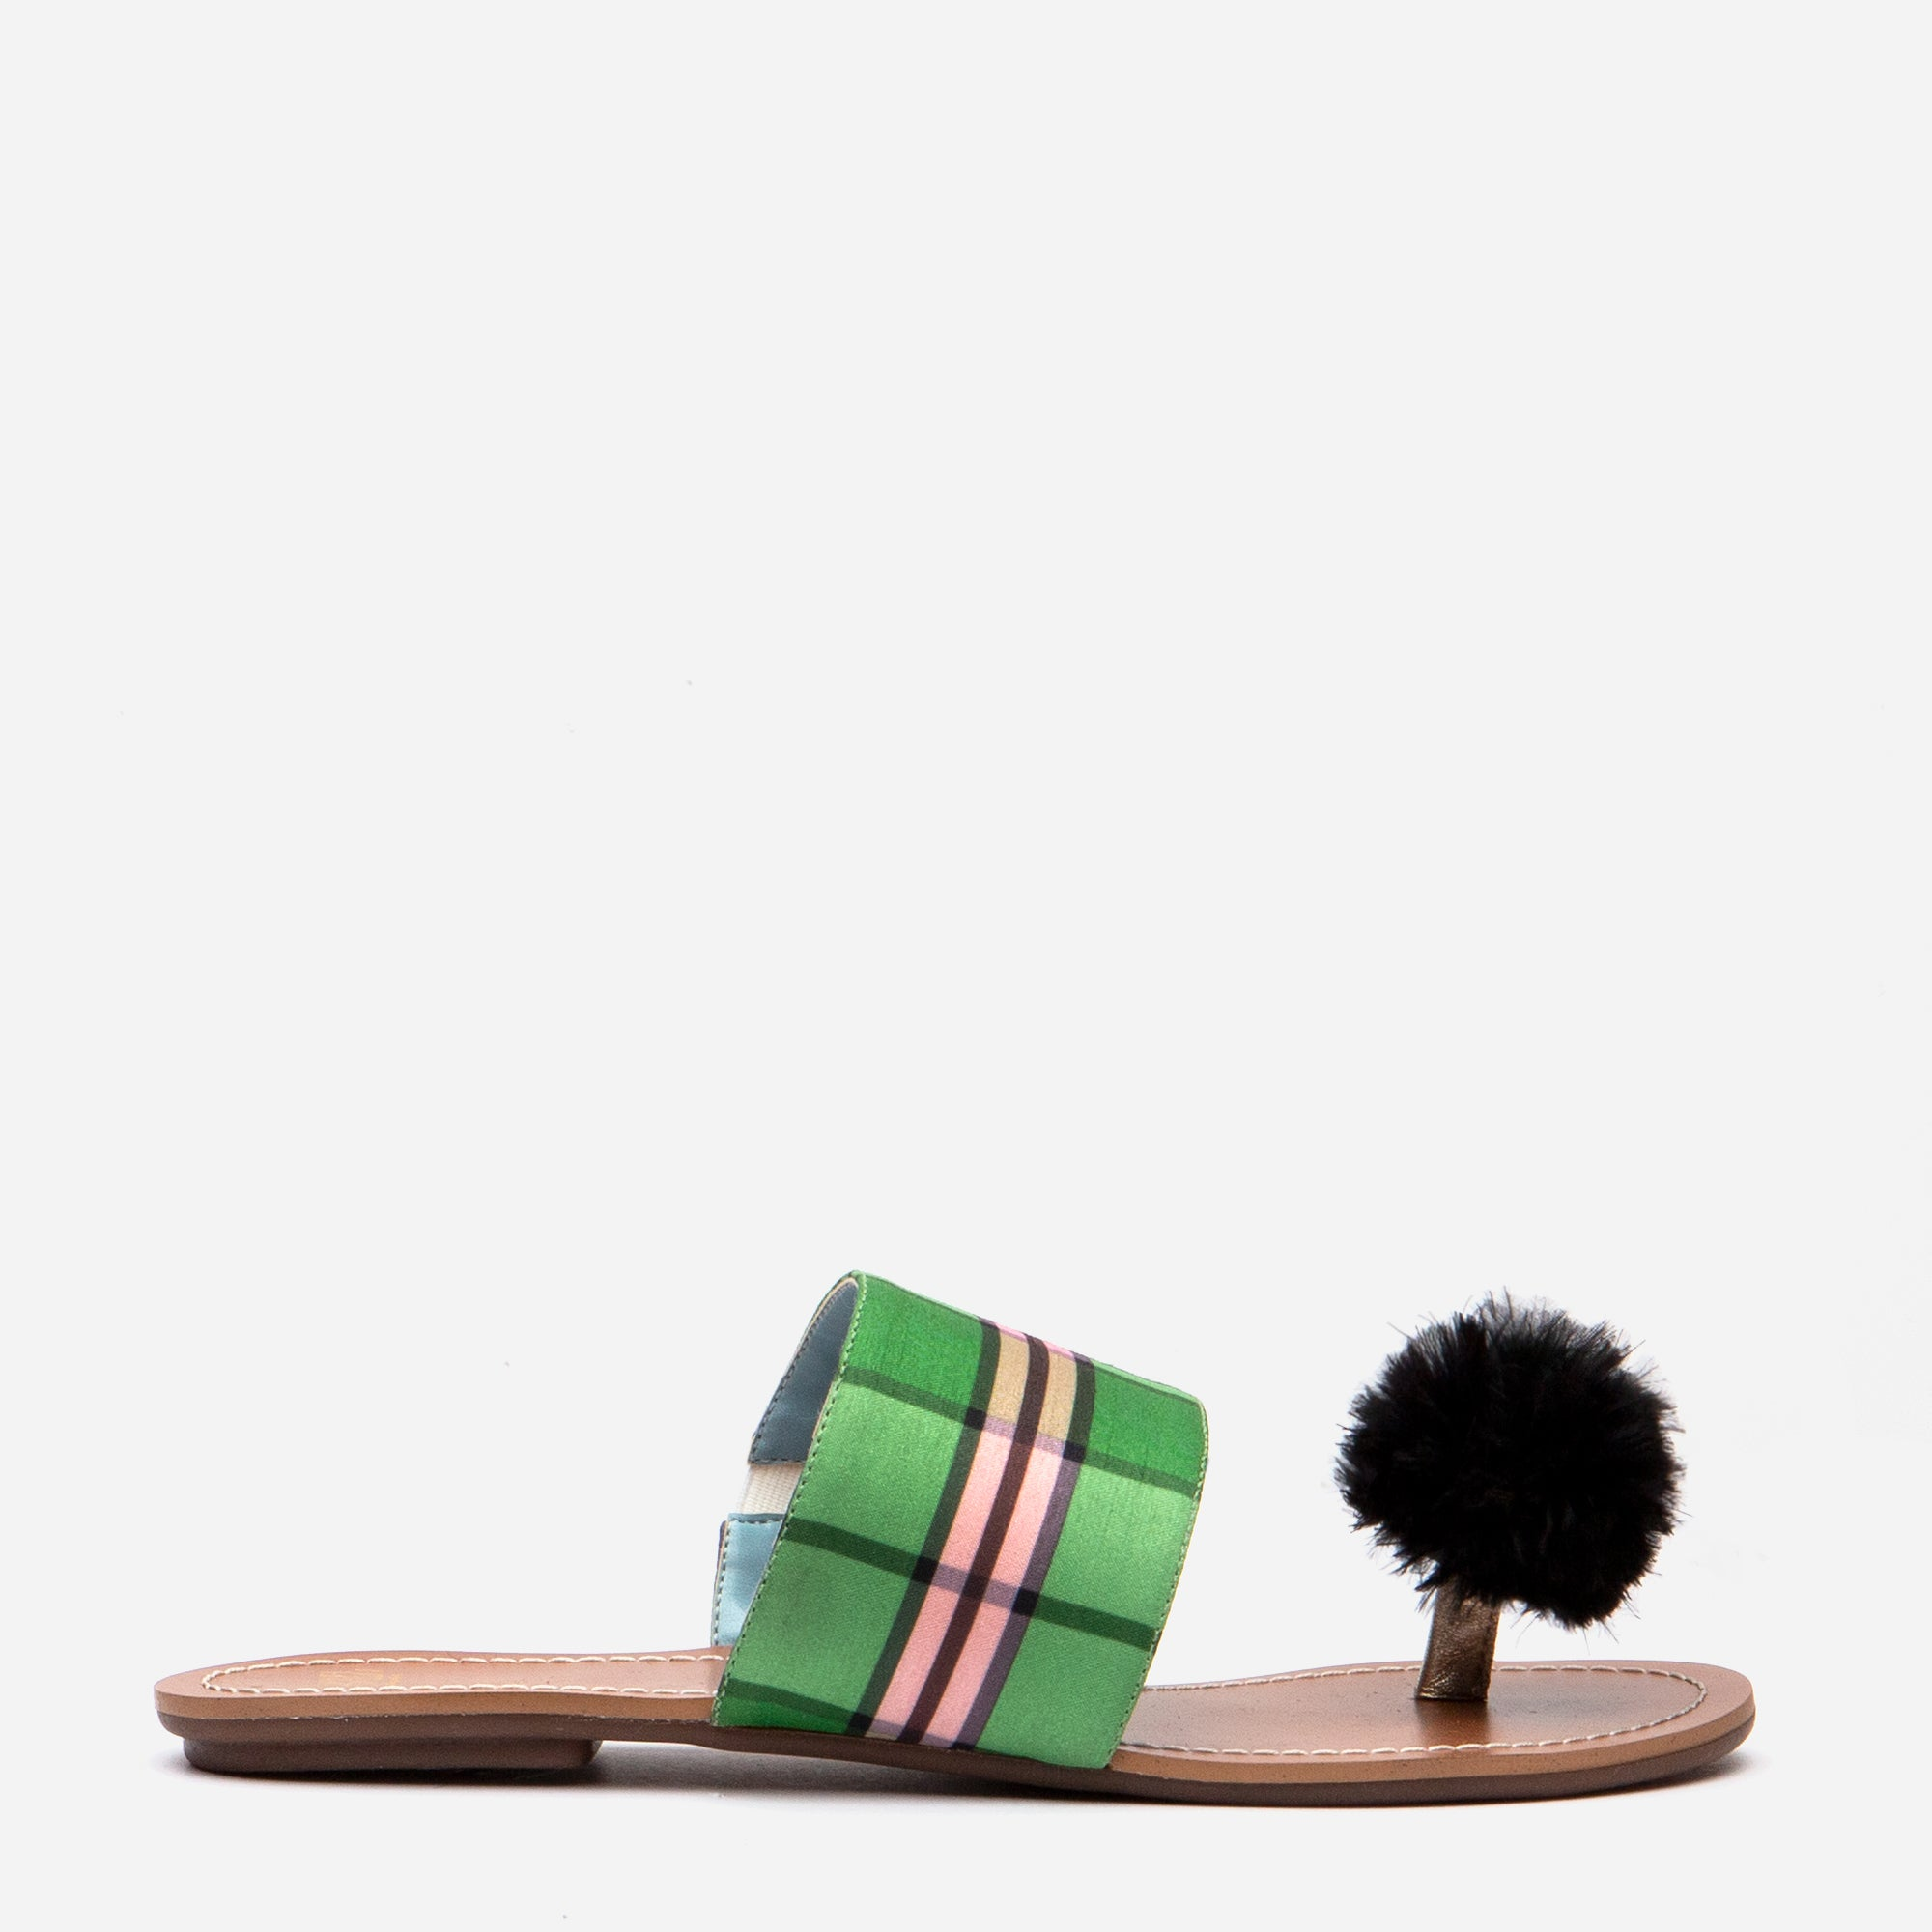 Clementine Pom Pom Sandal Nantucket Plaid